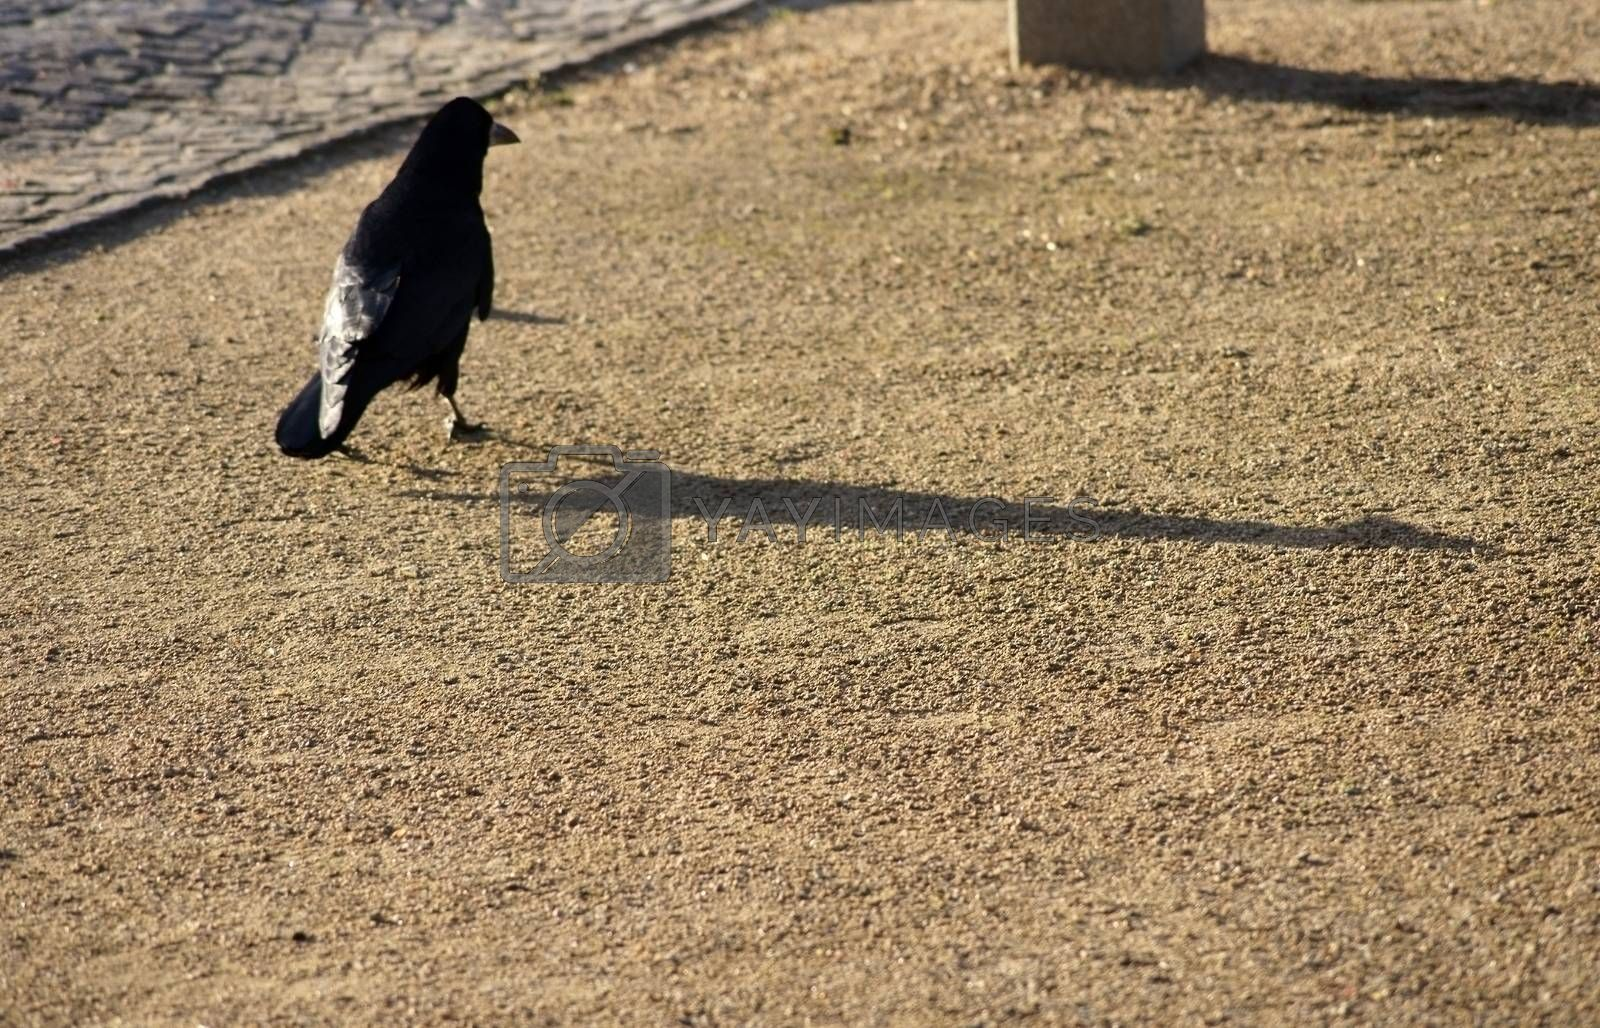 A crow poses on a sidewalk with a gravel bed and cast a shadow.